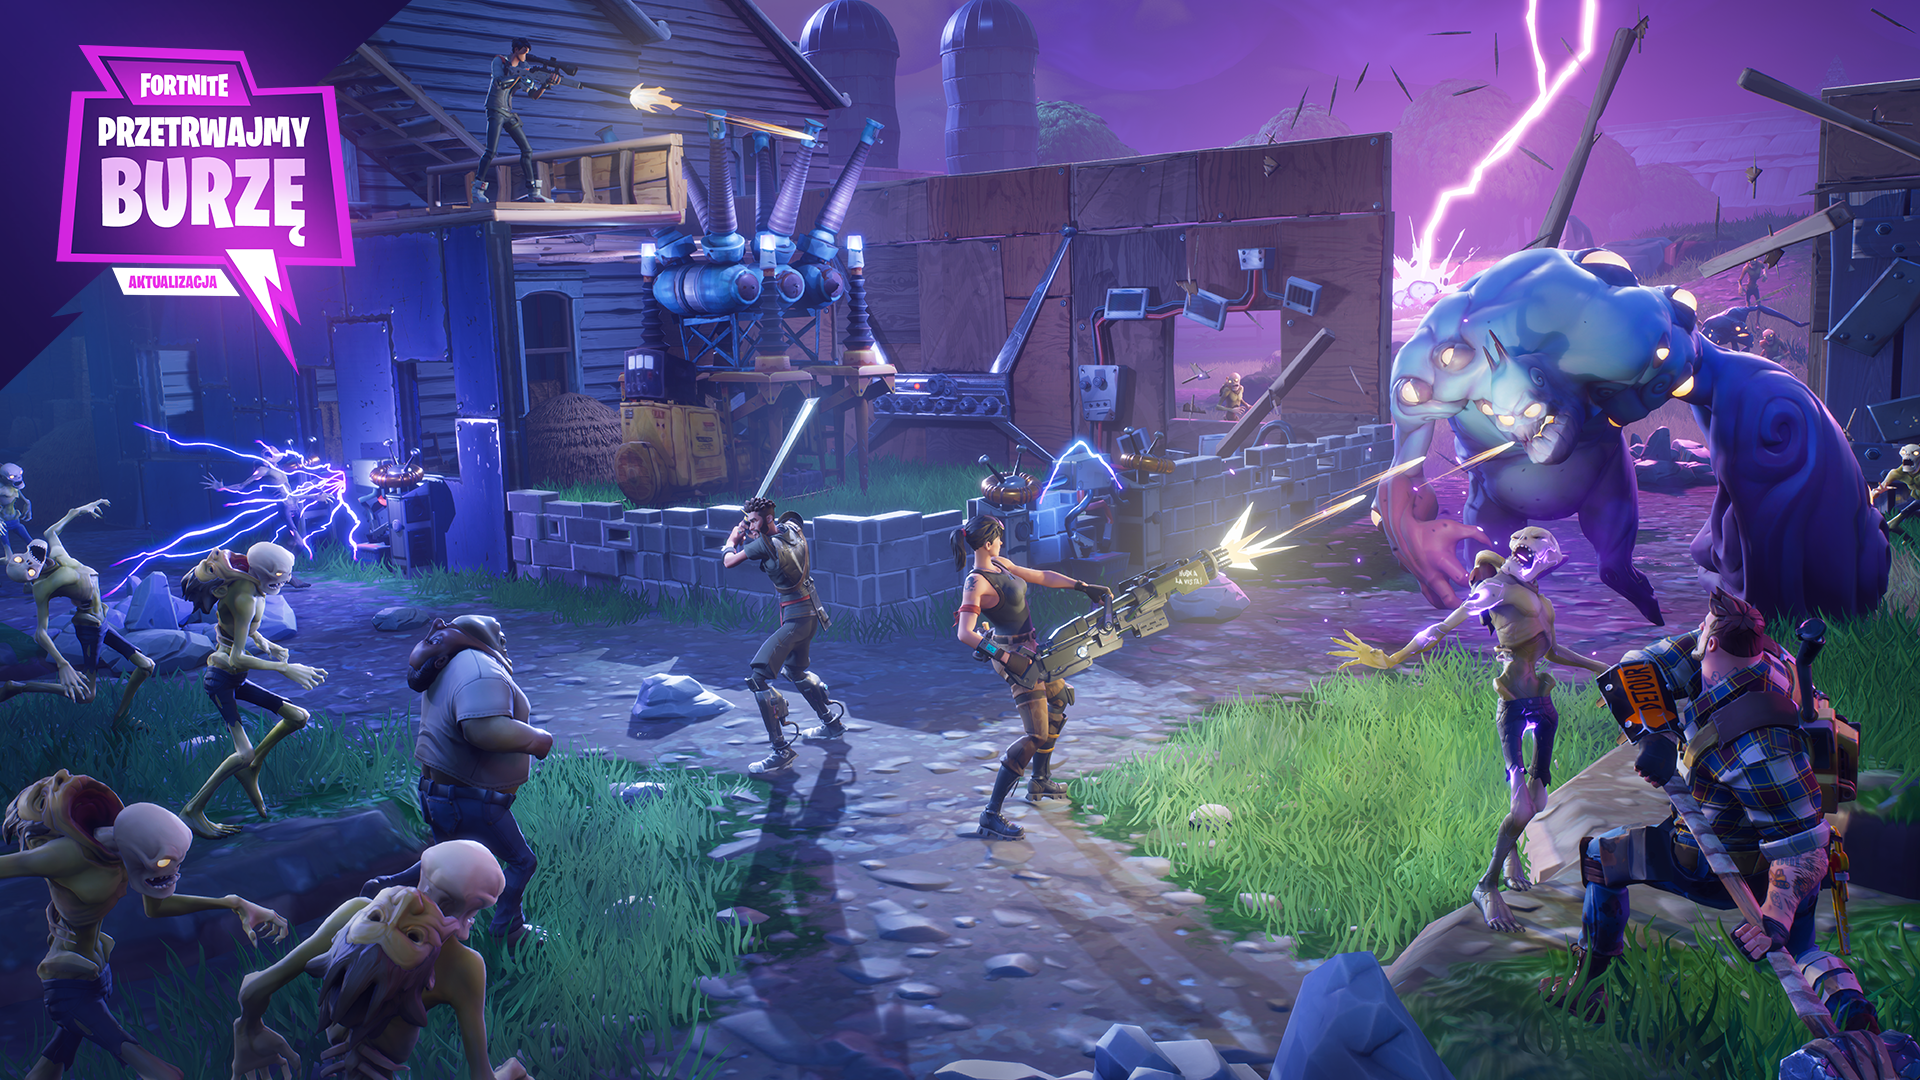 Fortnite%2Fblog%2Fsurvive-the-storm---release-notes%2FPL_Survivor-Mode-Gameplay-1920x1080-136fbe2c64b0dc9fe525cf76a7750a42da2e4af2